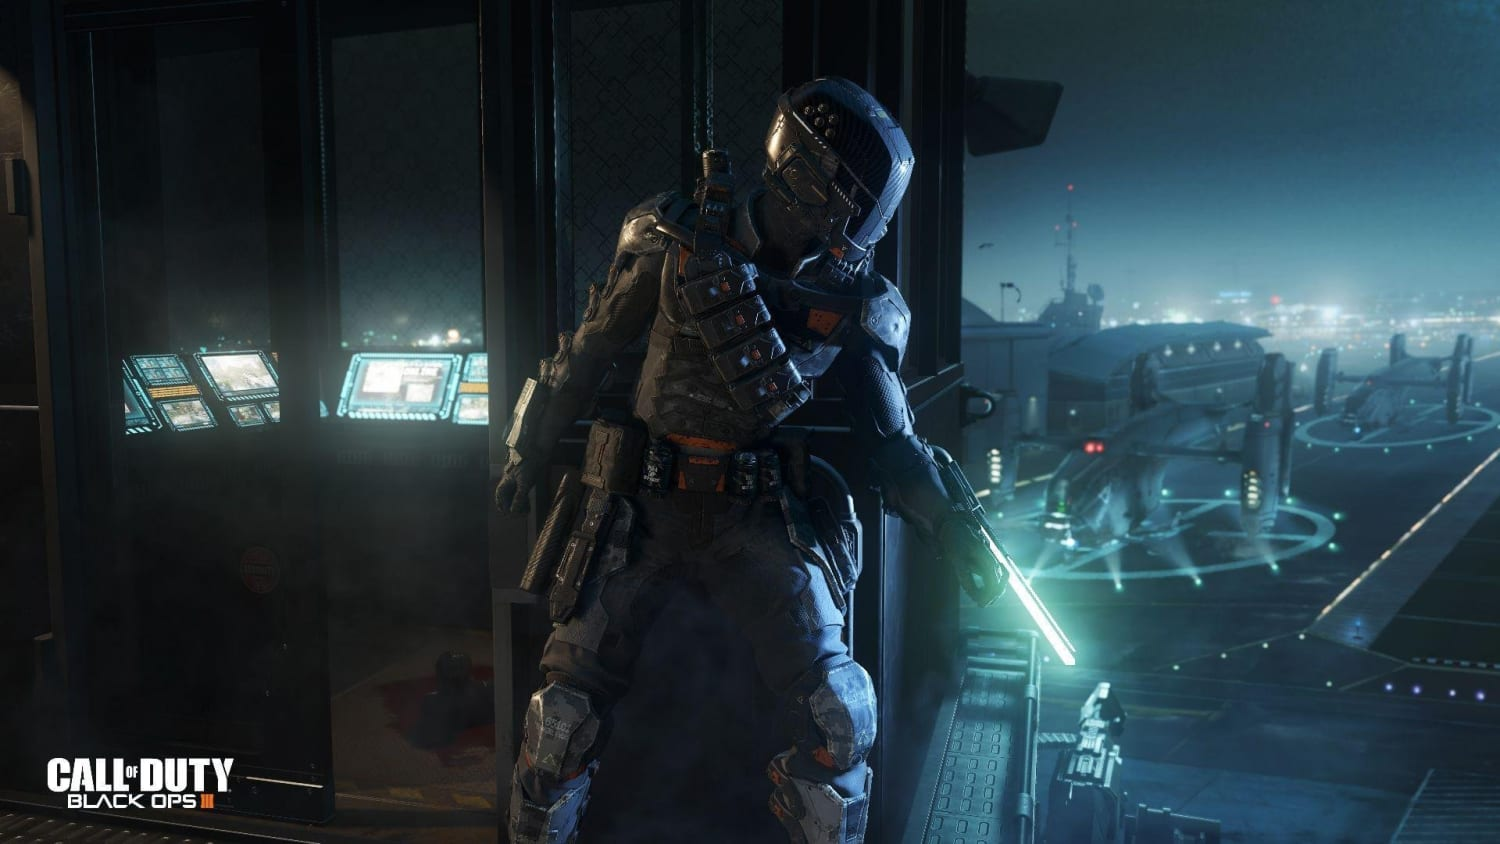 Call Of Duty Black Ops 3 Review Our Final Verdict